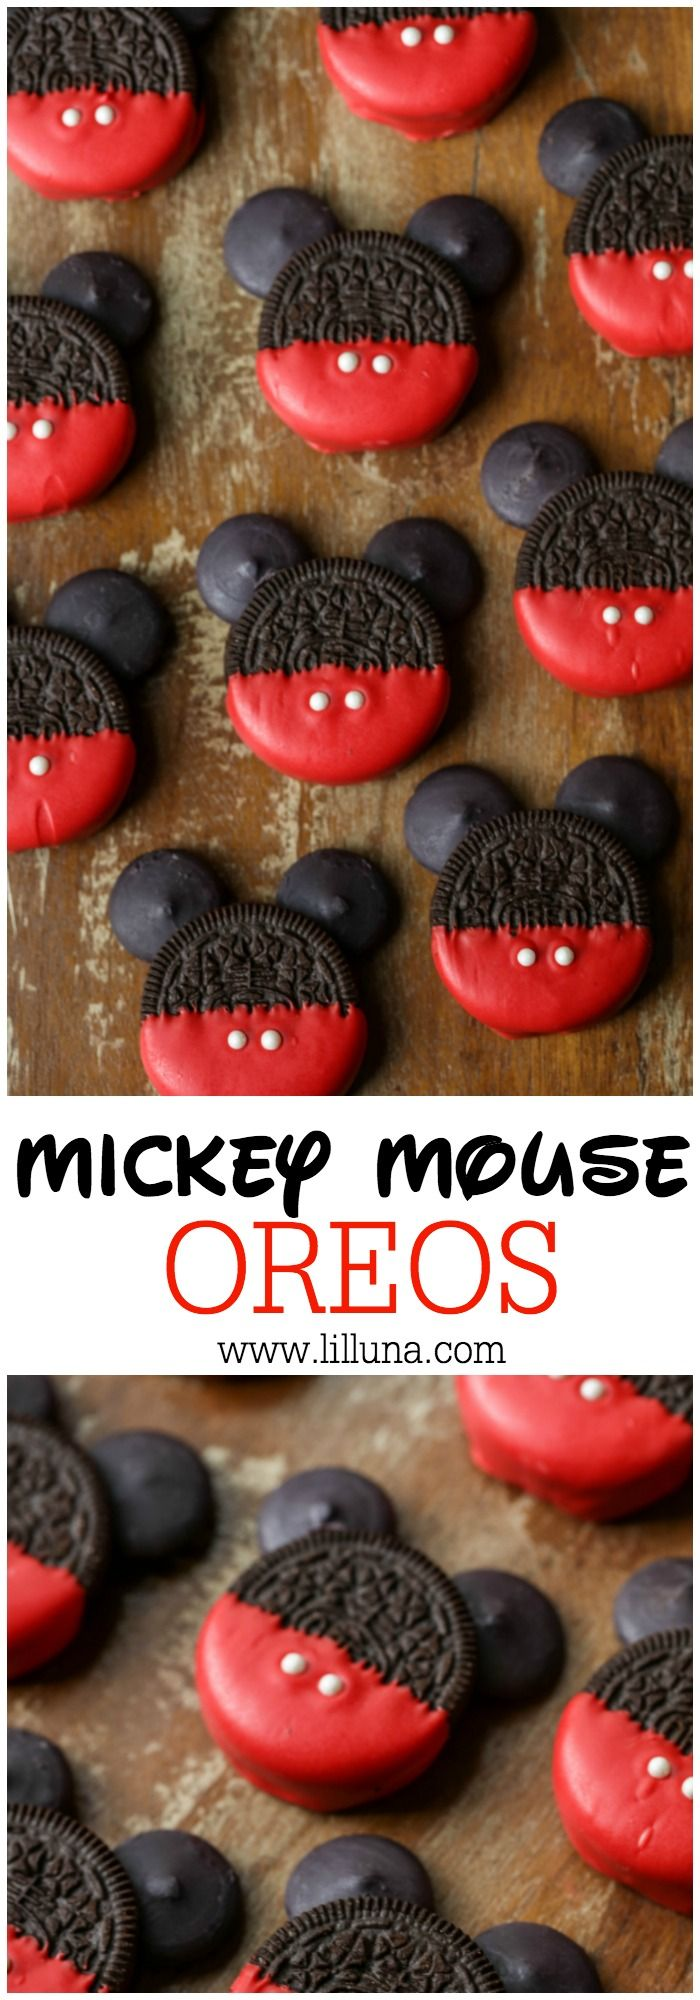 Mickey Mouse OREOS - a simple, cute and tasty treat to make with or for the kids for any occasion!